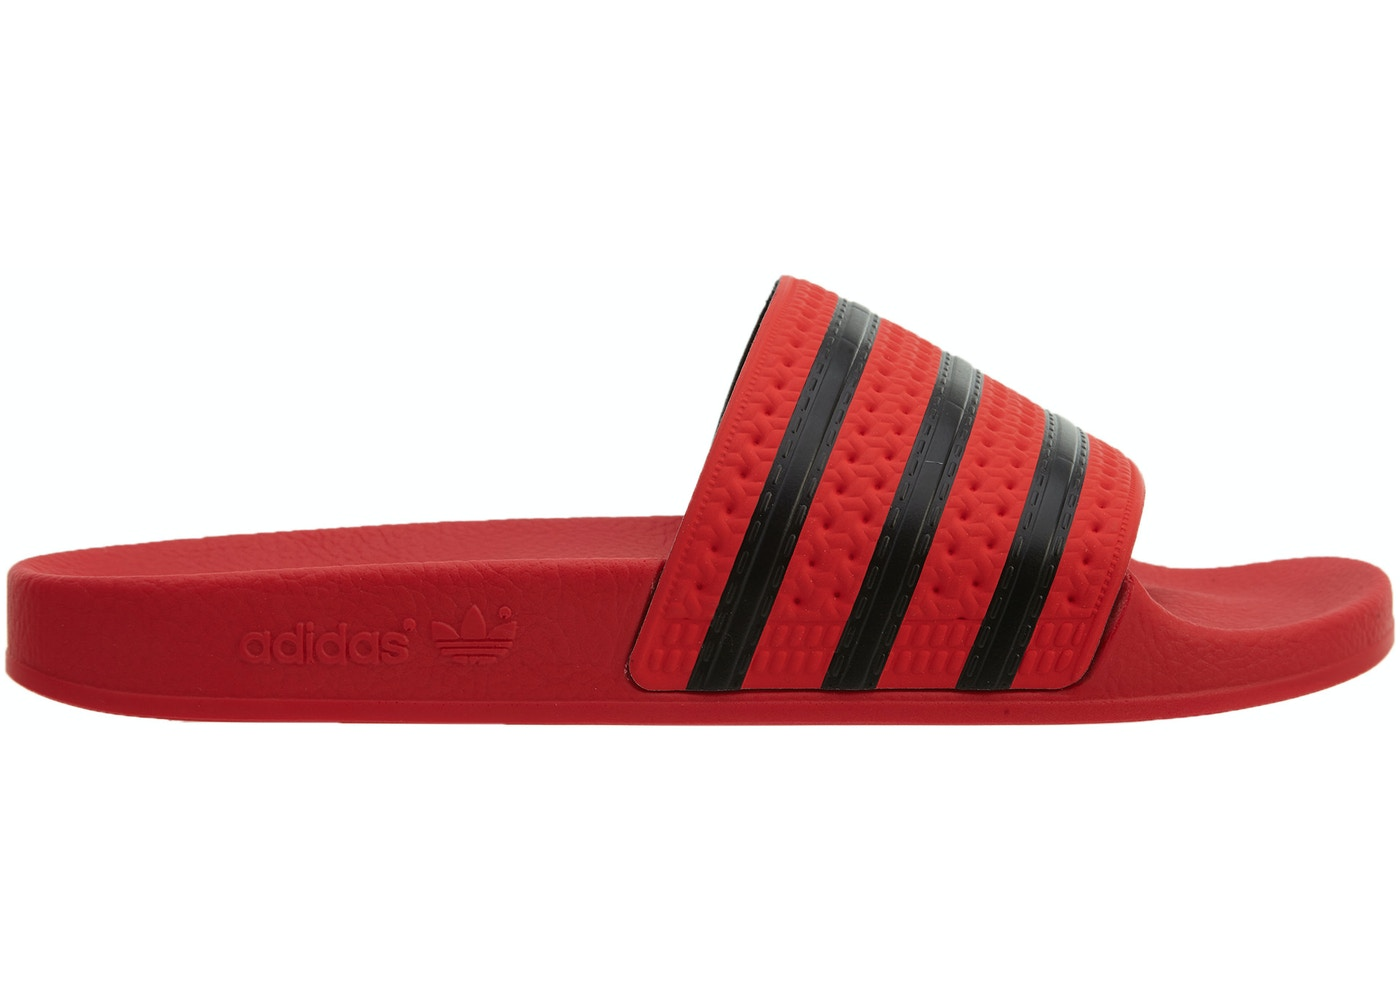 a1b0d2a7120d adidas Adilette Real Coral Black-Real Coral - CQ3098